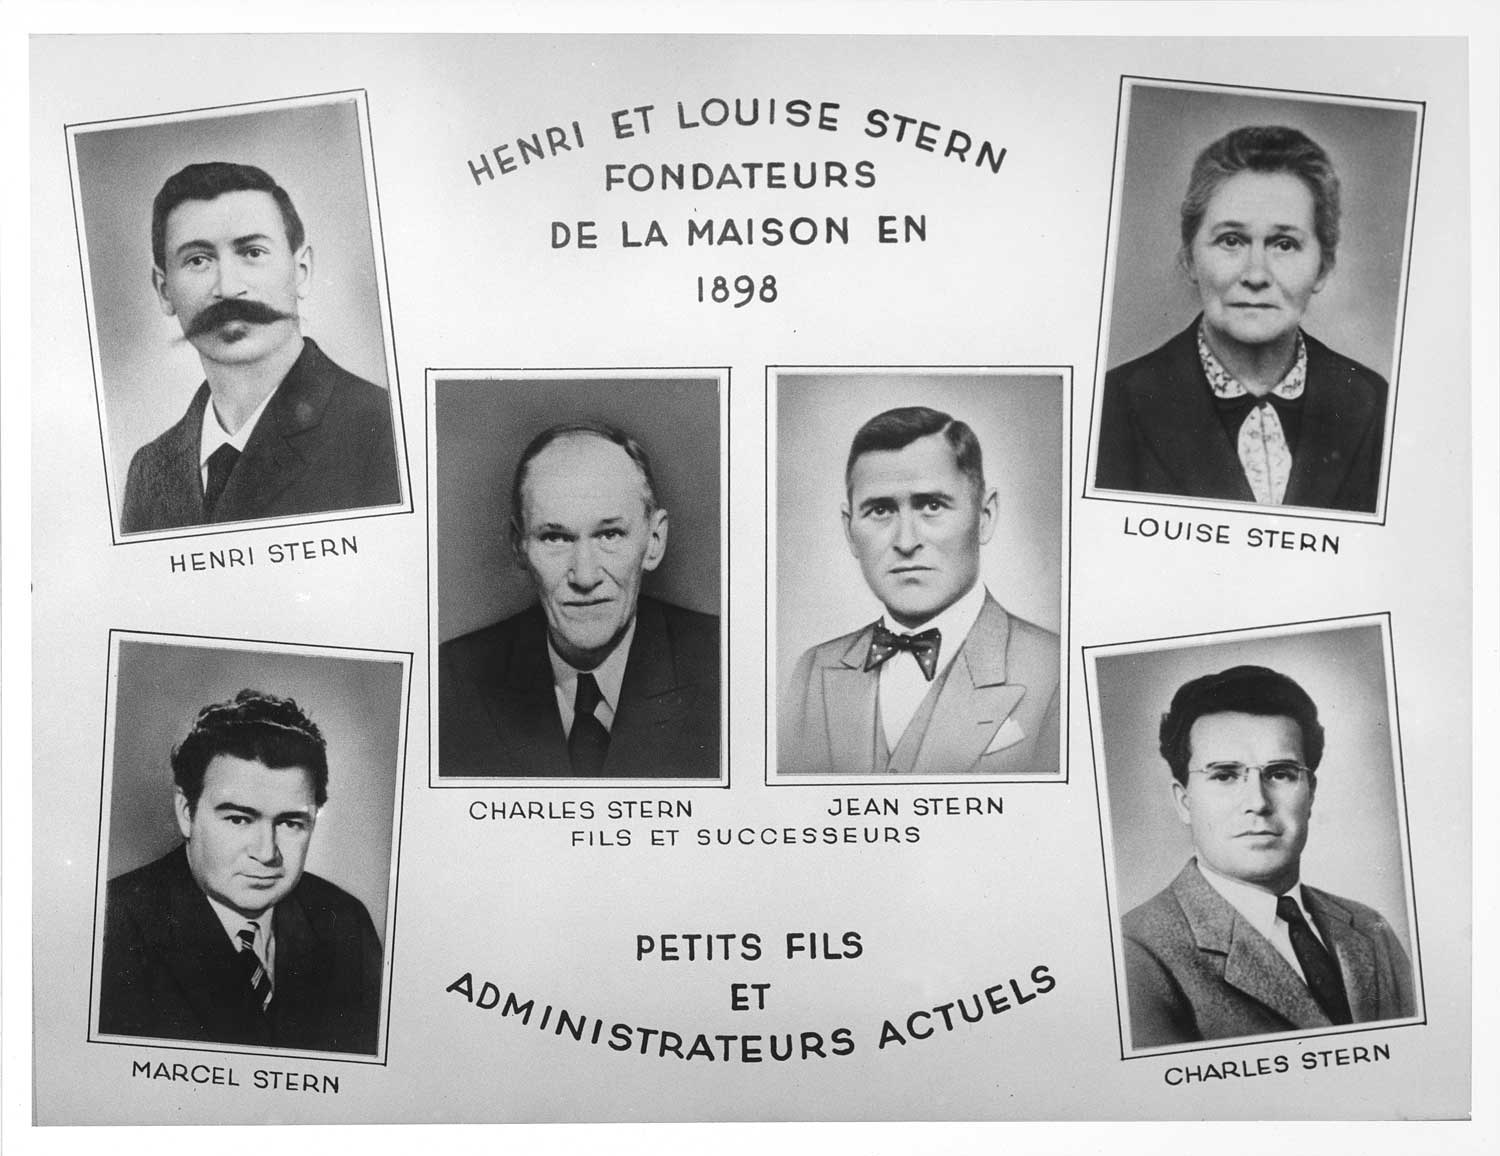 Patek Philippe was acquired by the Stern Family and run by brothers Charles and Jean Stern in 1932.